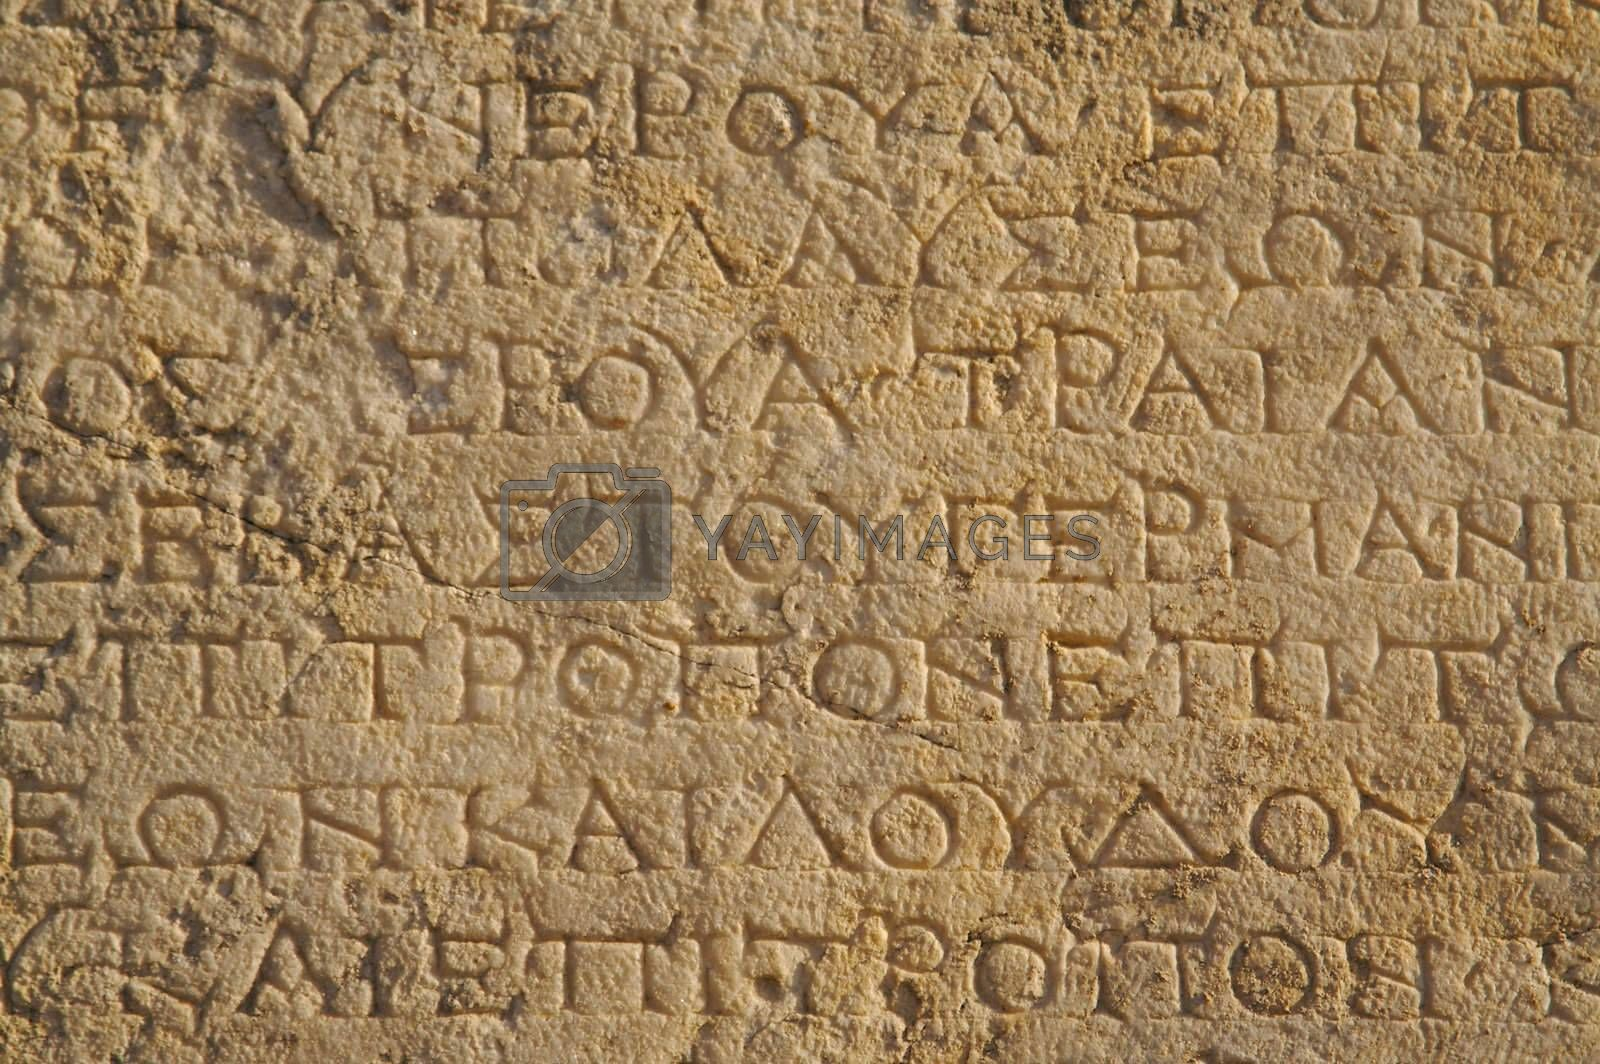 A close up of ancient Greek text from Ephesus, Turkey.